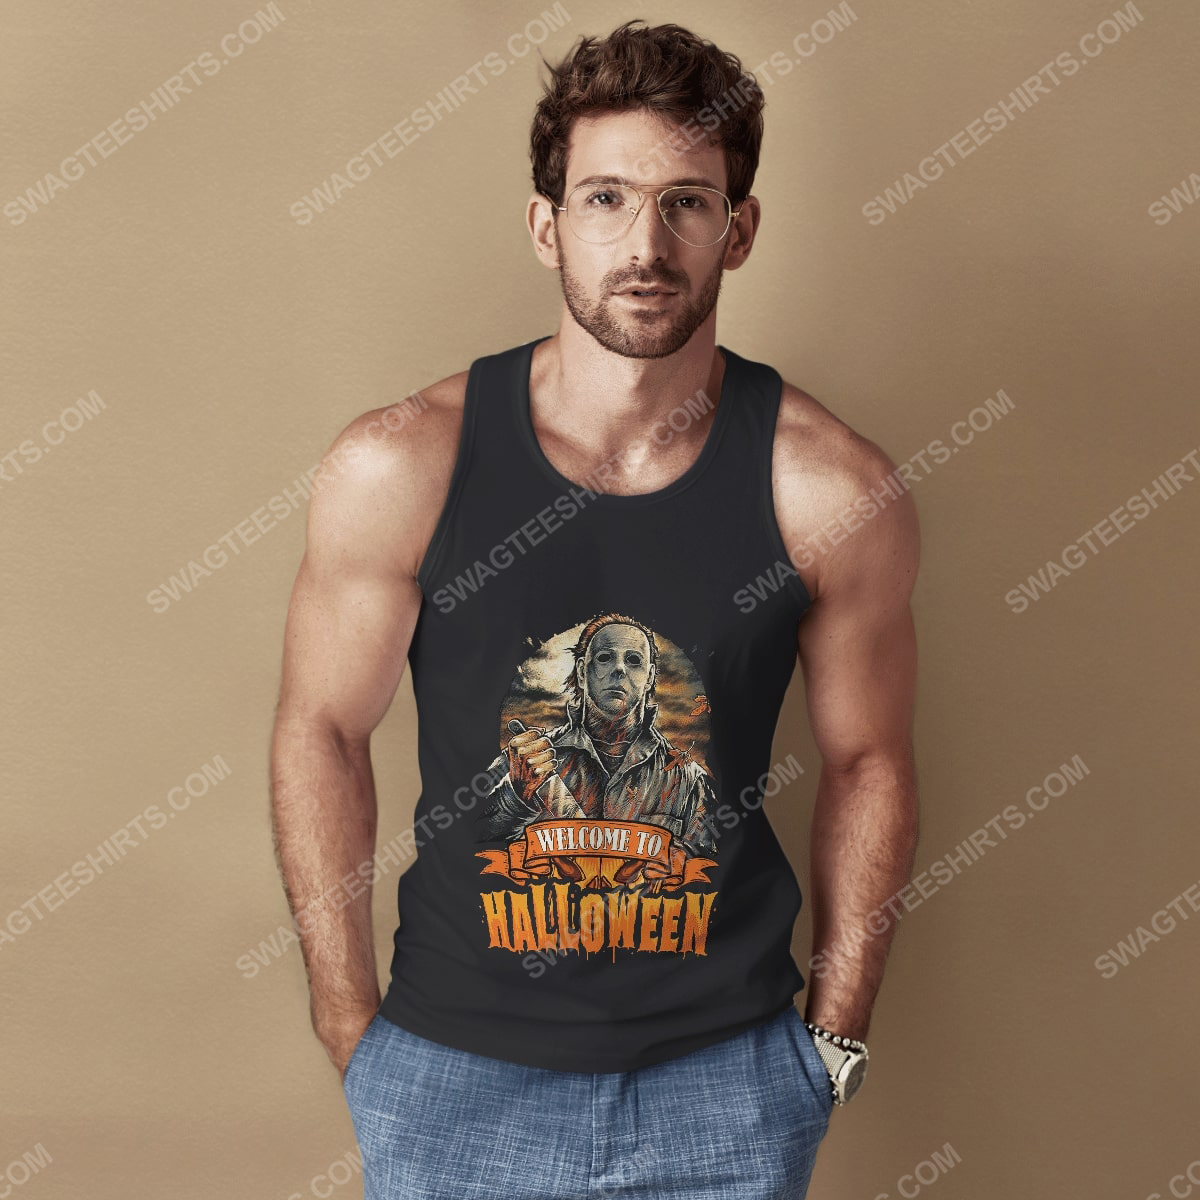 Vintage michael myers welcome to halloween tank top 1(1)